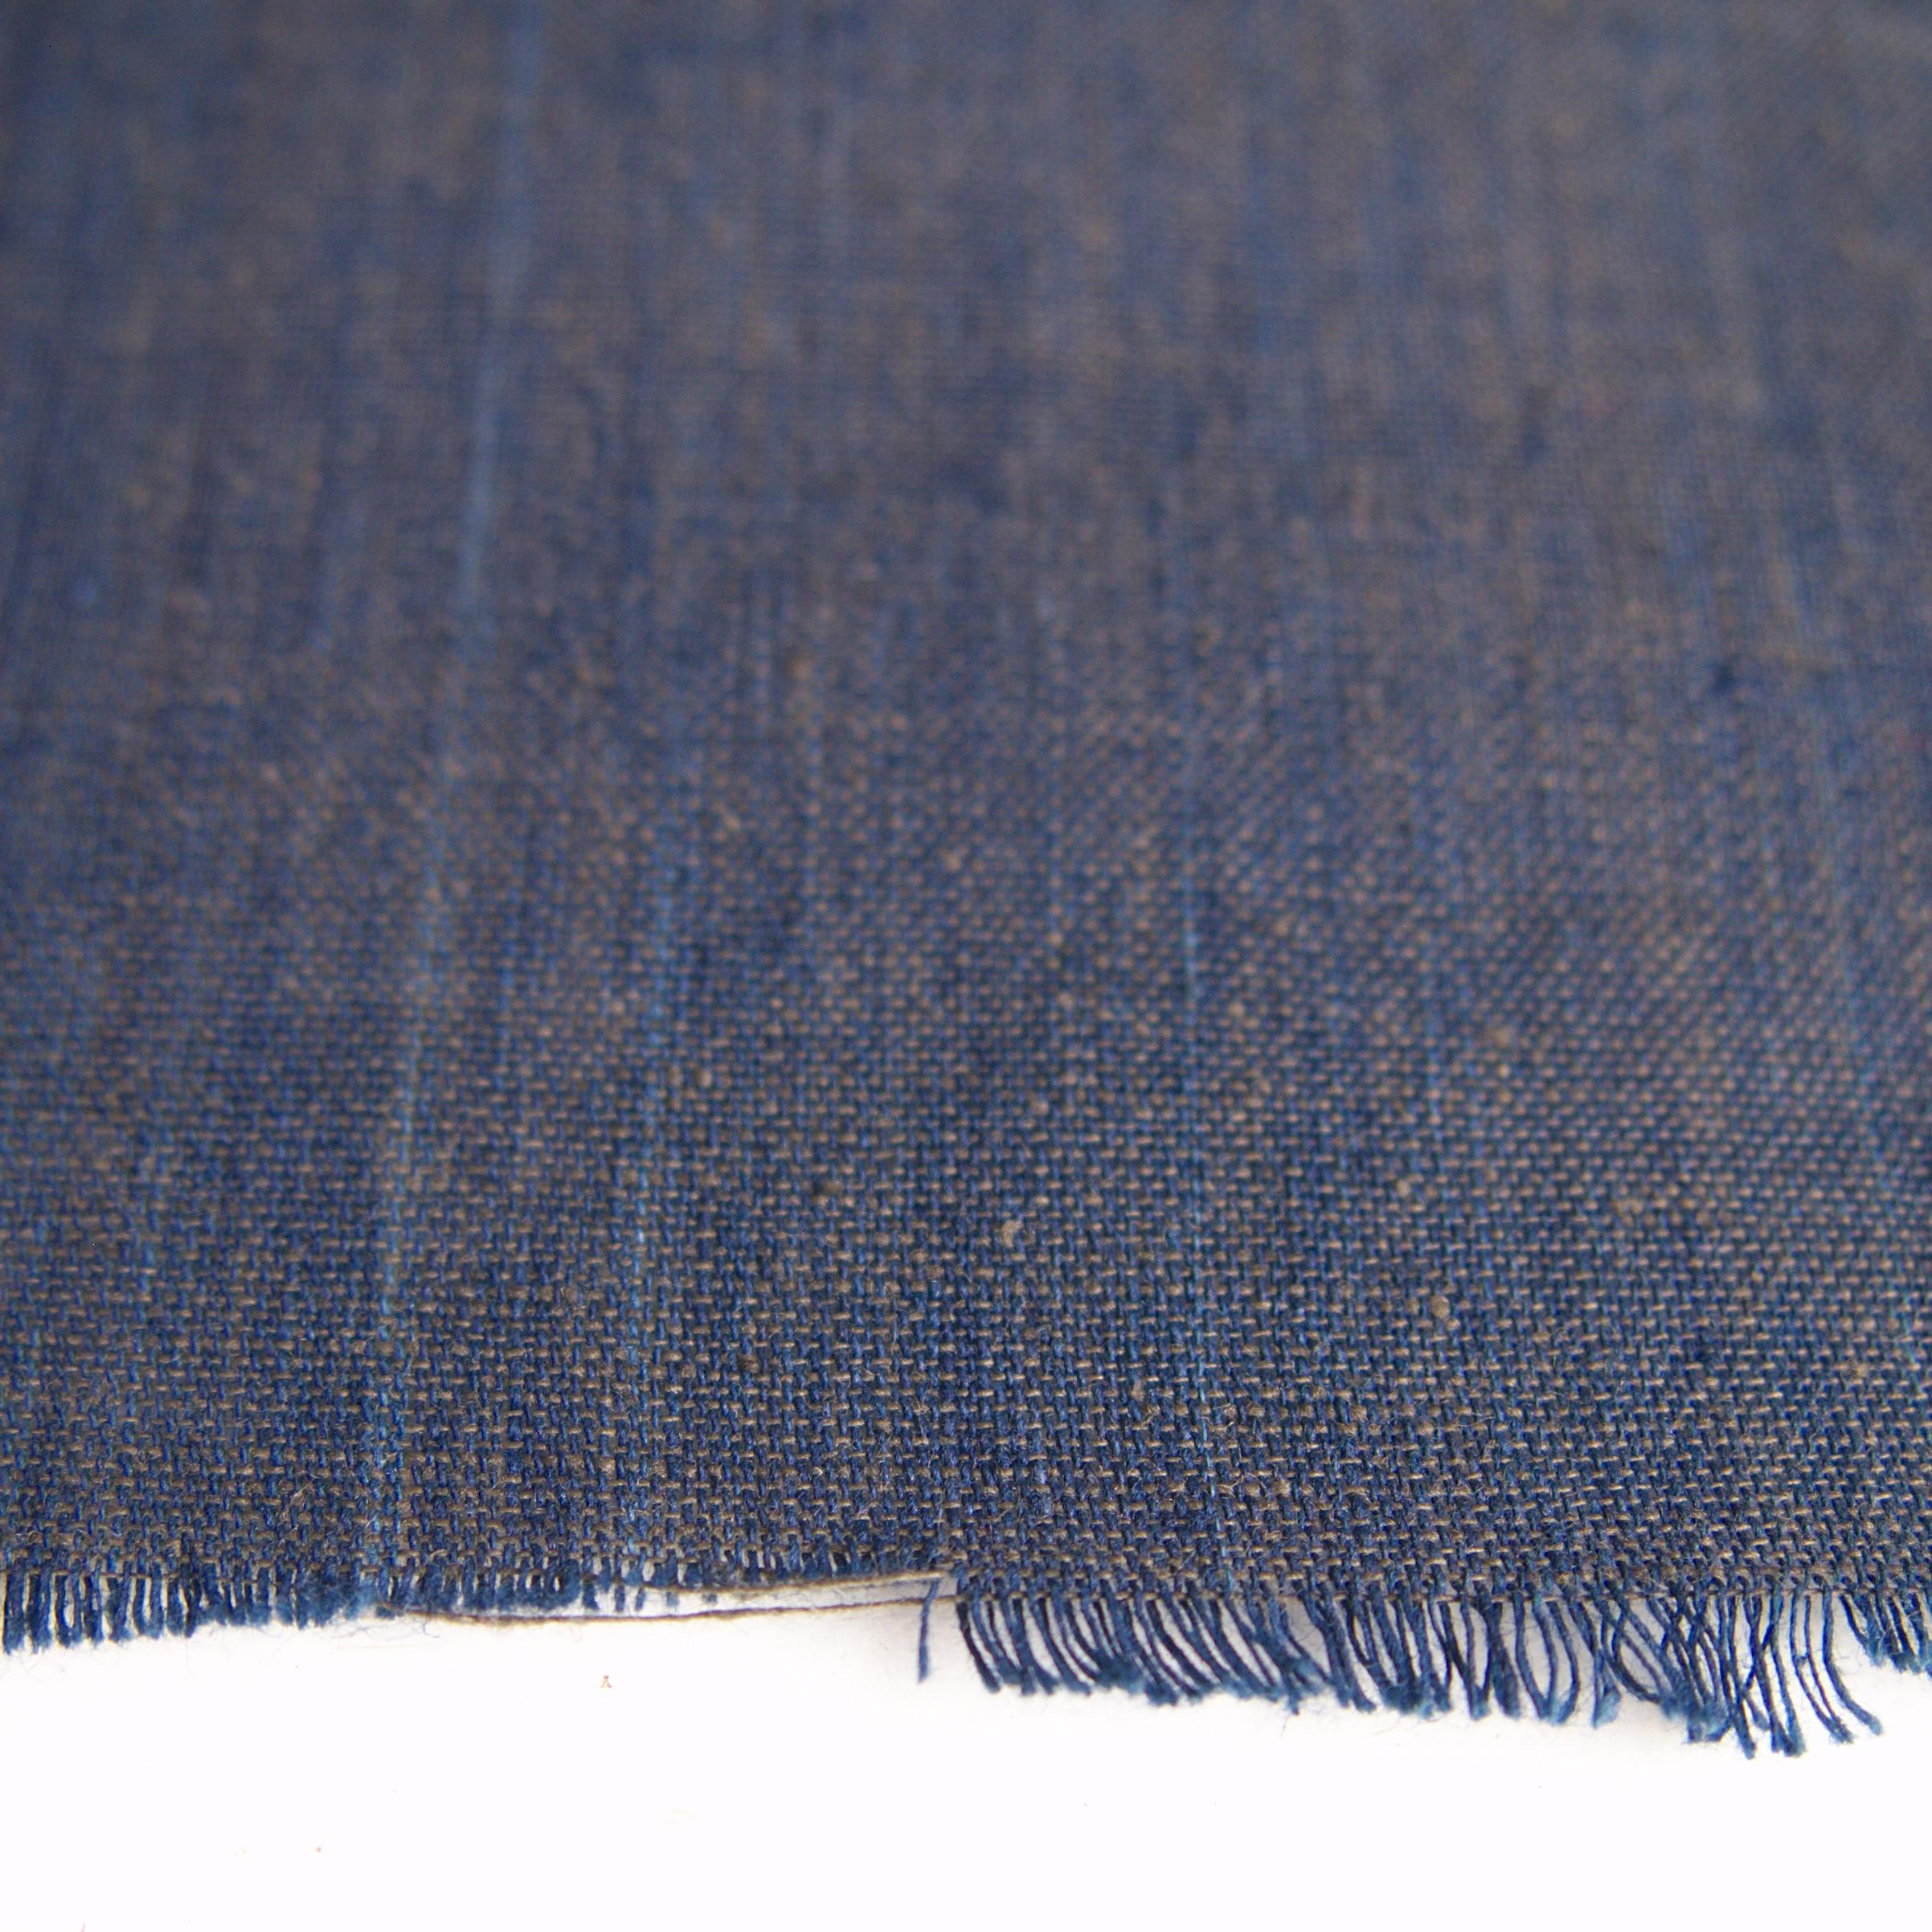 100% Handloom Woven Cotton - Natural Indigo Warp, Olive Green Weft - Cross Colour - Close Up